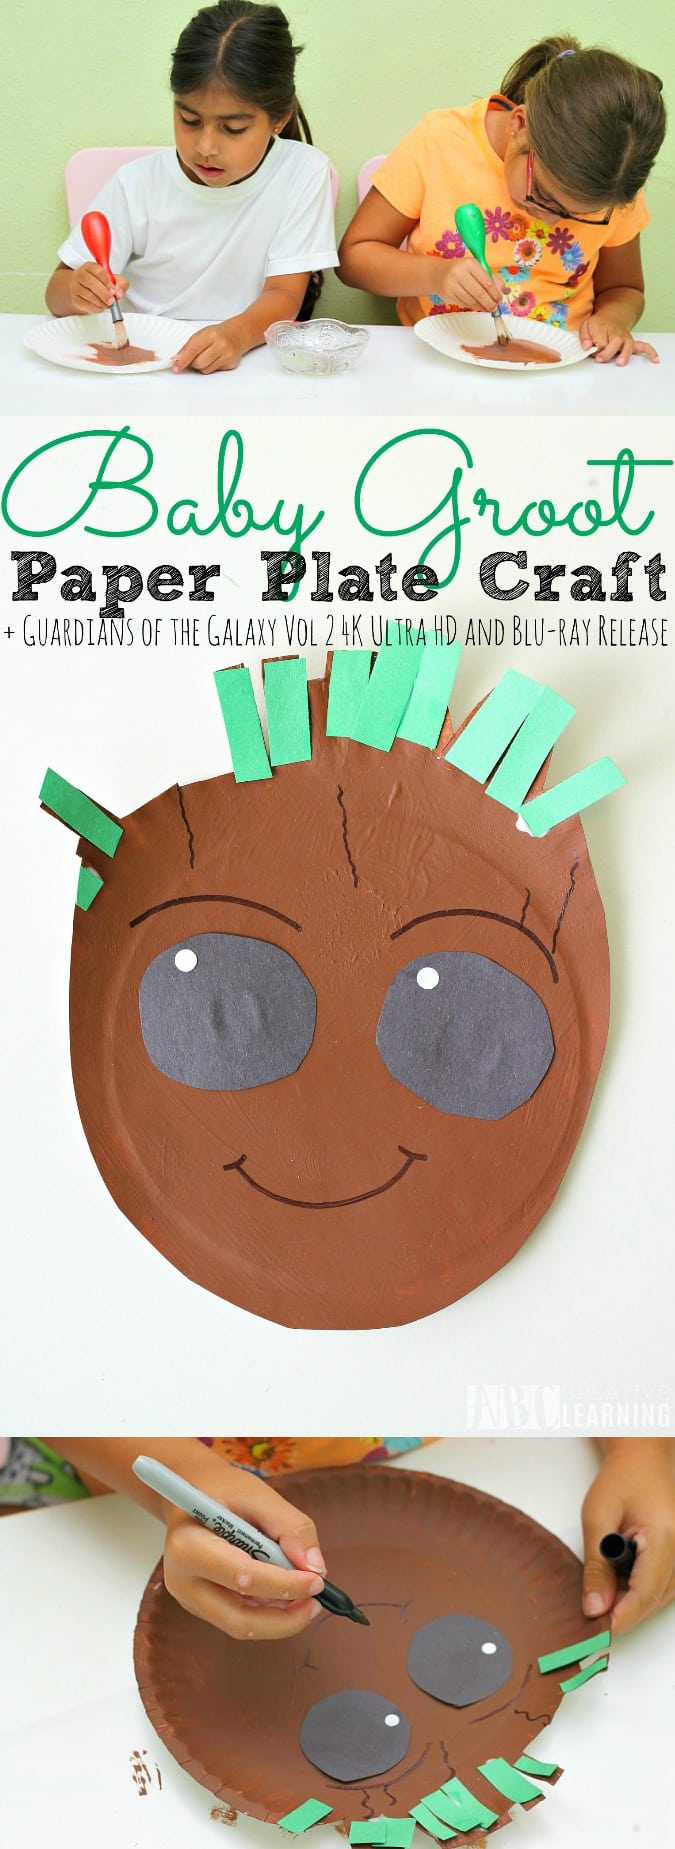 Paper Plate Baby Groot Craft + Guardians of the Galaxy Vol 2 4K Ultra HD™ and Blu-ray Release - abccreativelearning.com